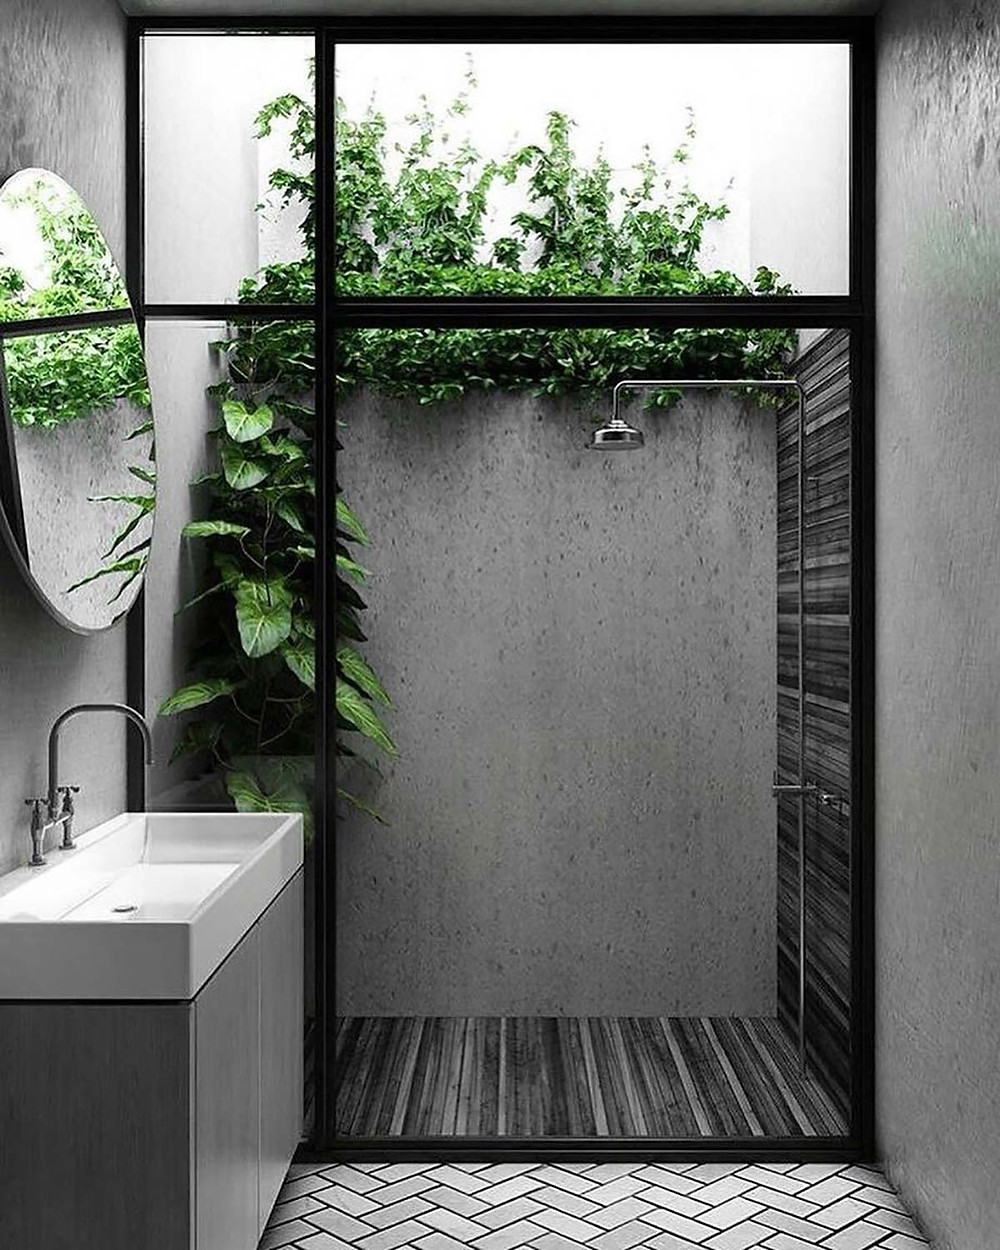 biophilic design in outdoor bathroom